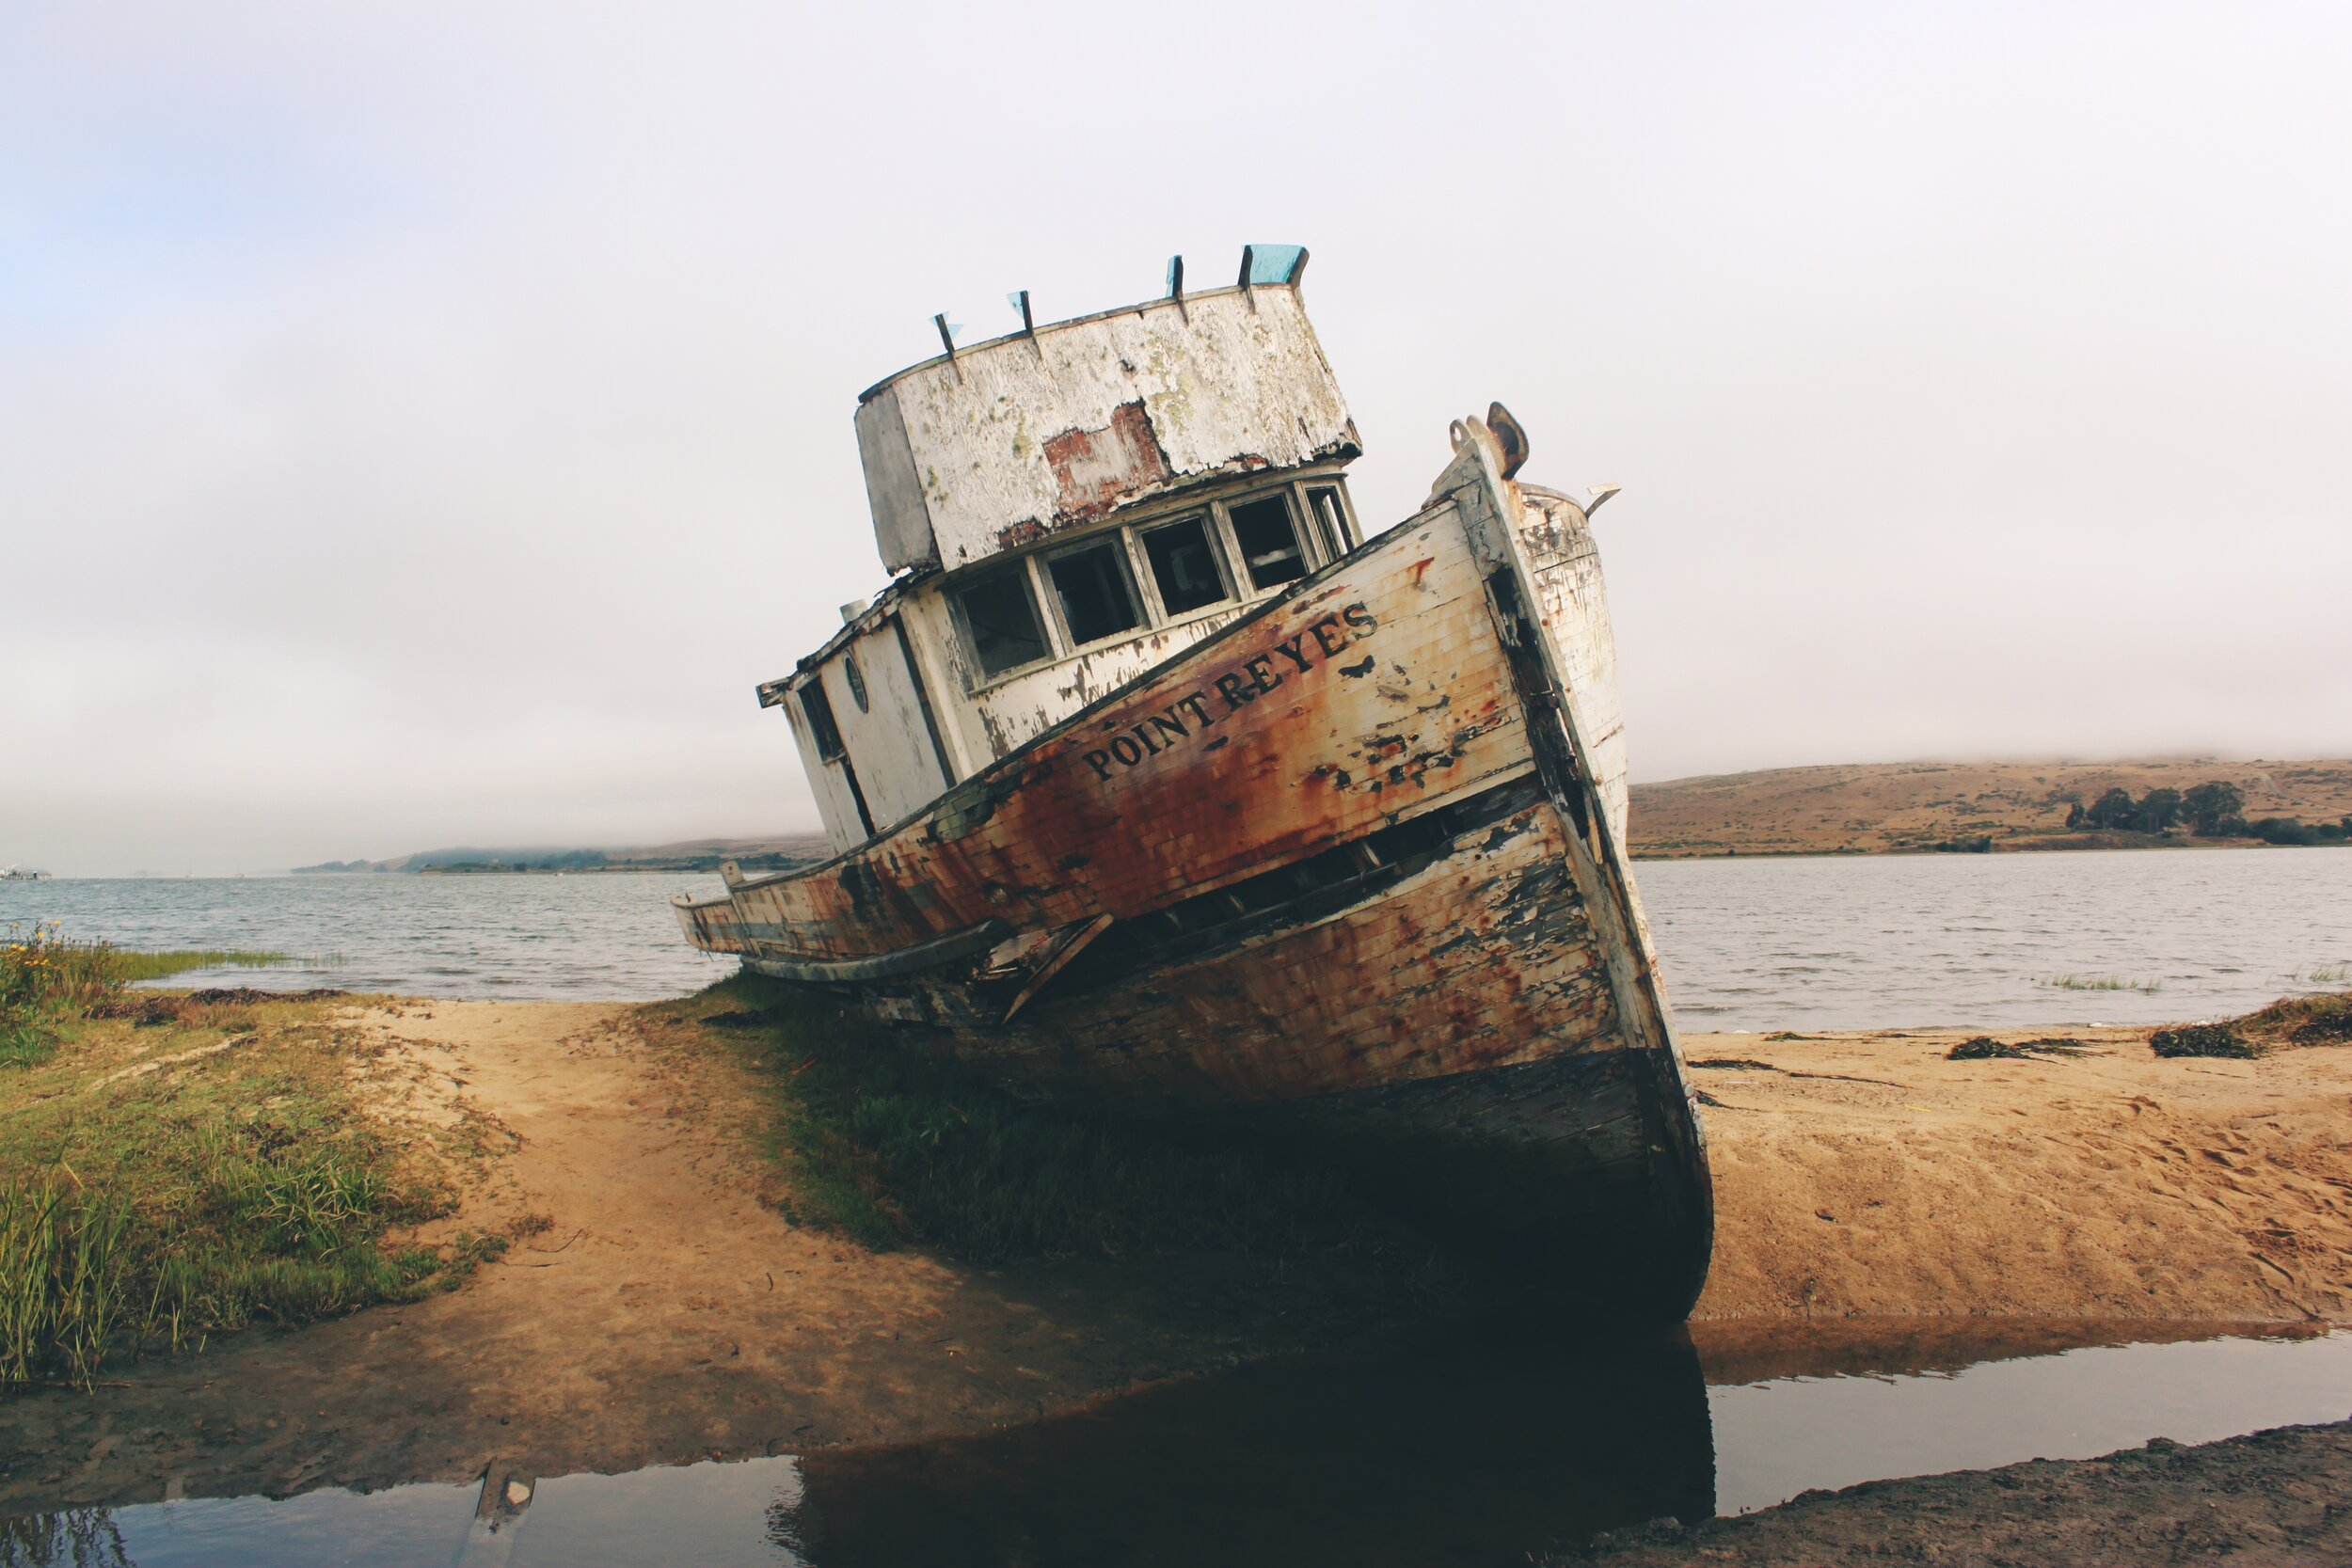 Are we shipwrecked?